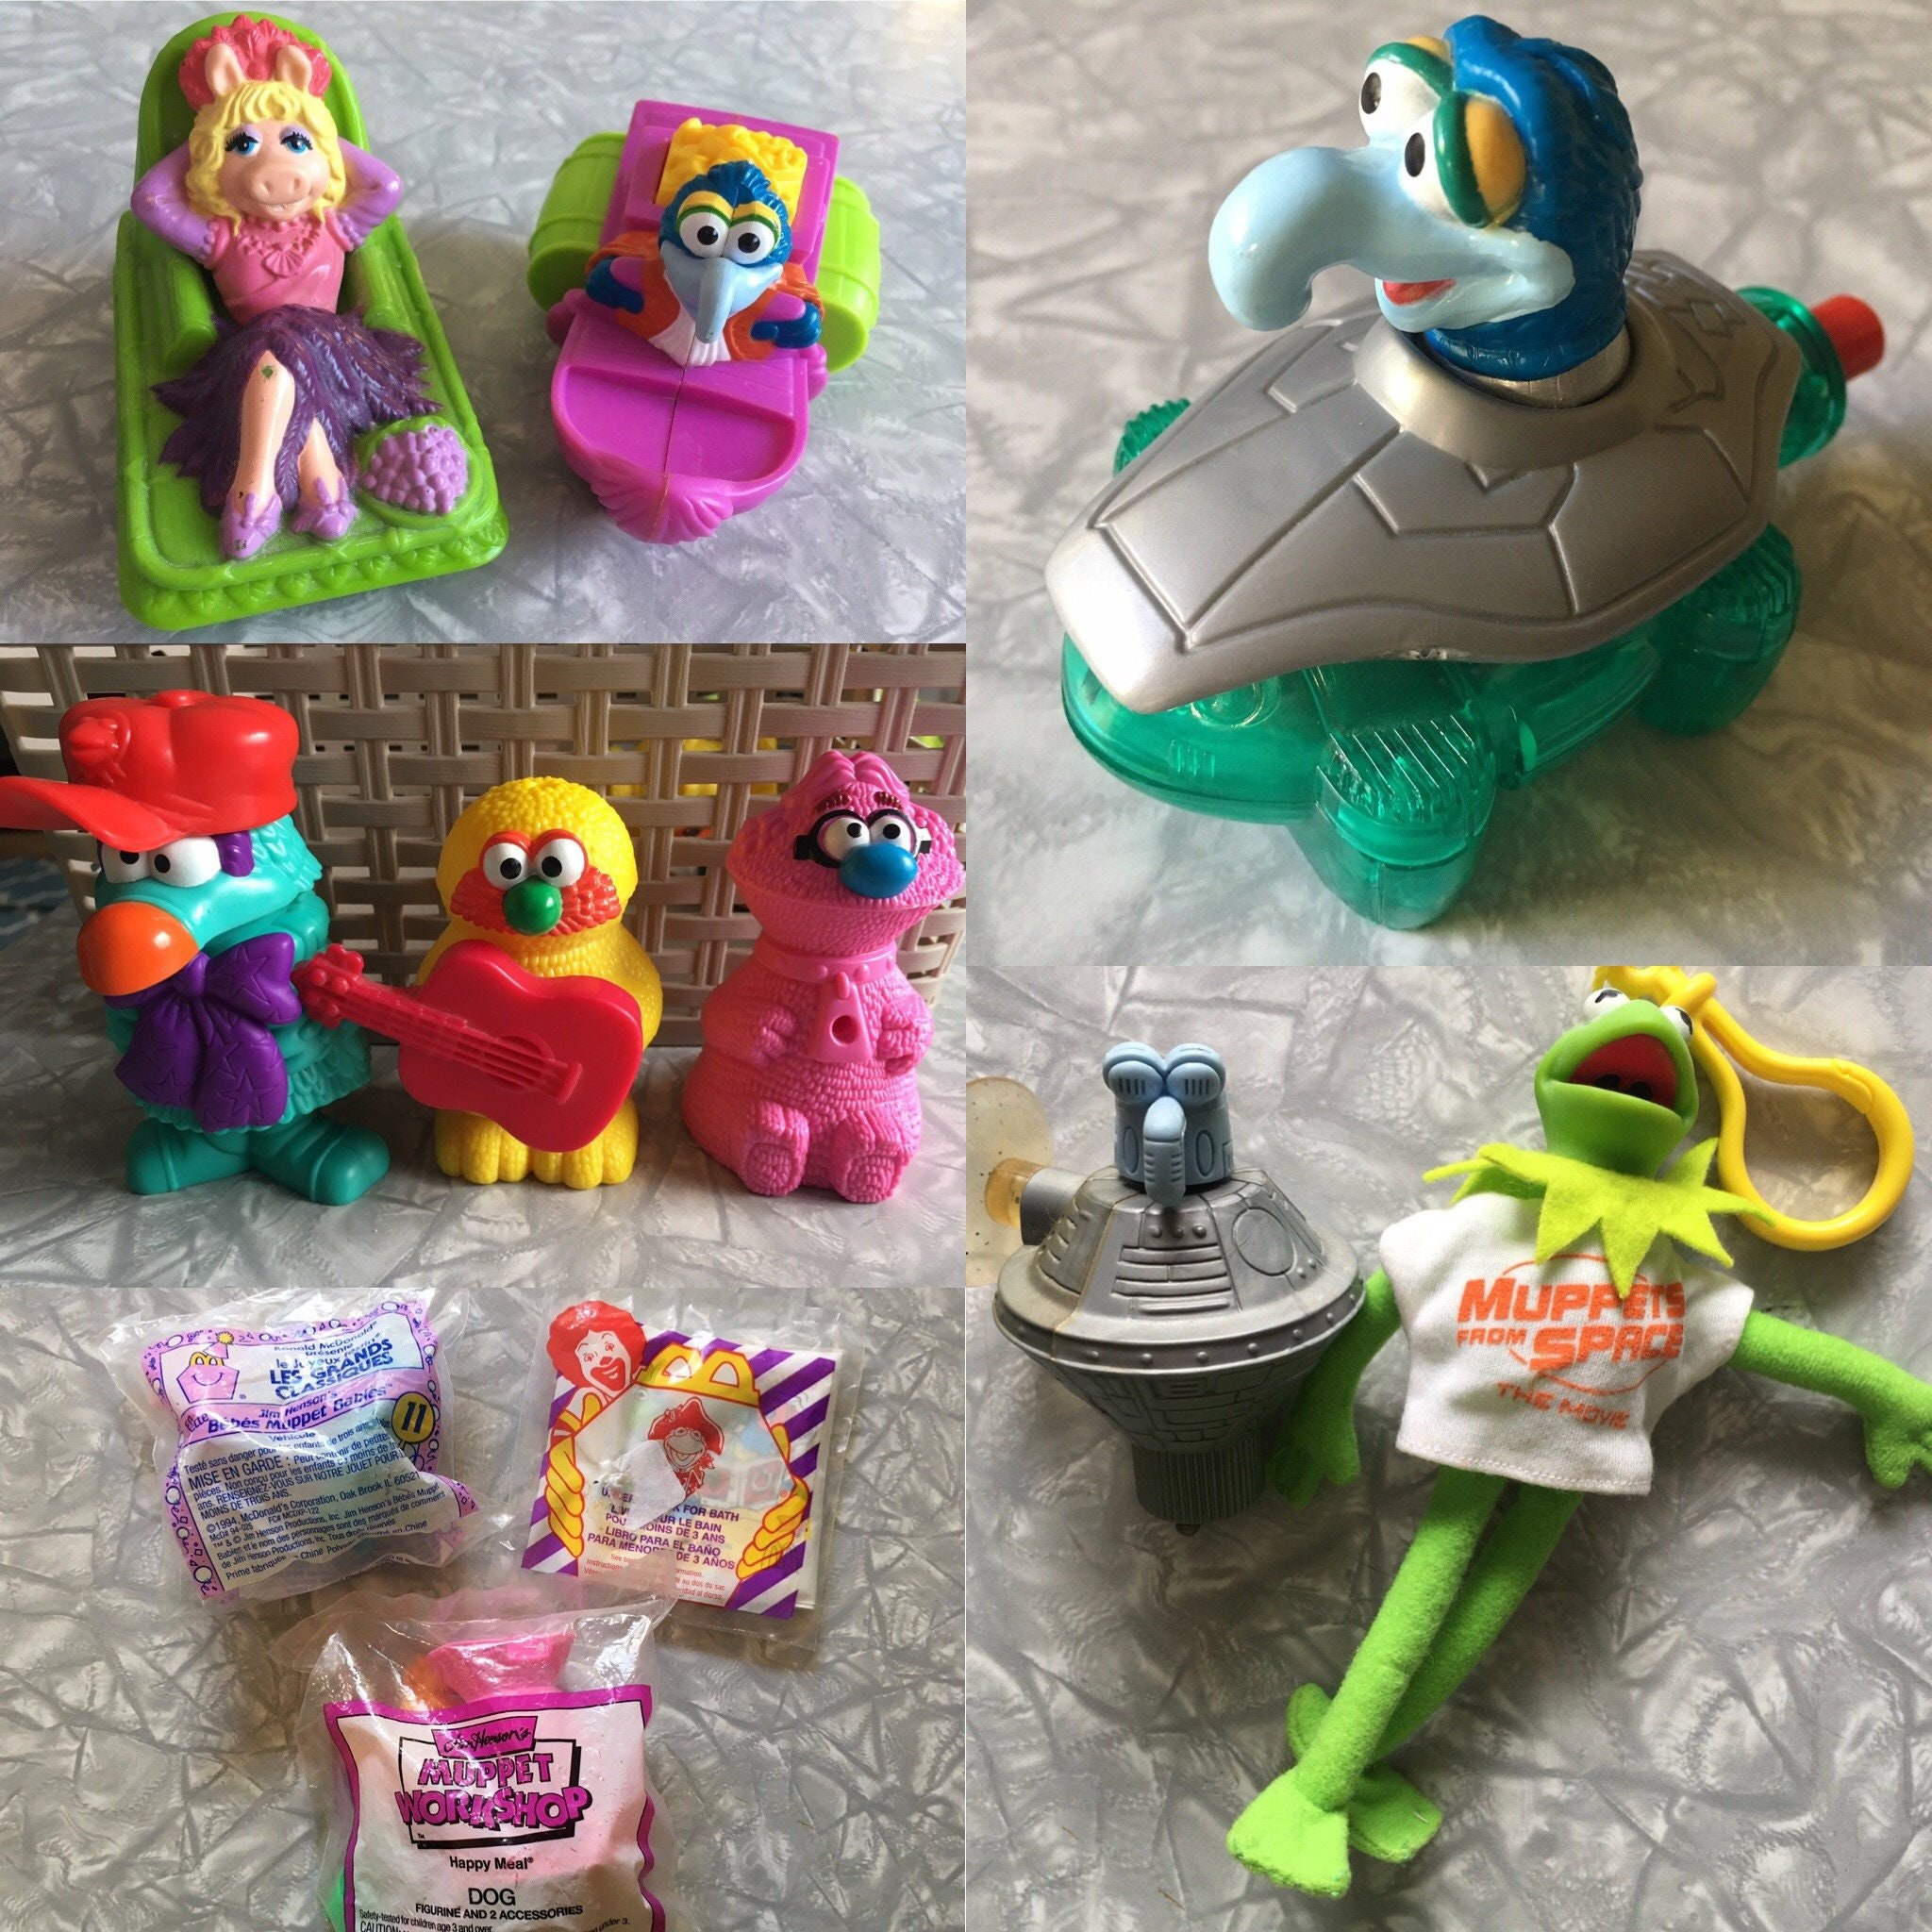 1990's Jim Henson Muppet McDonald's Happy Meal Toys